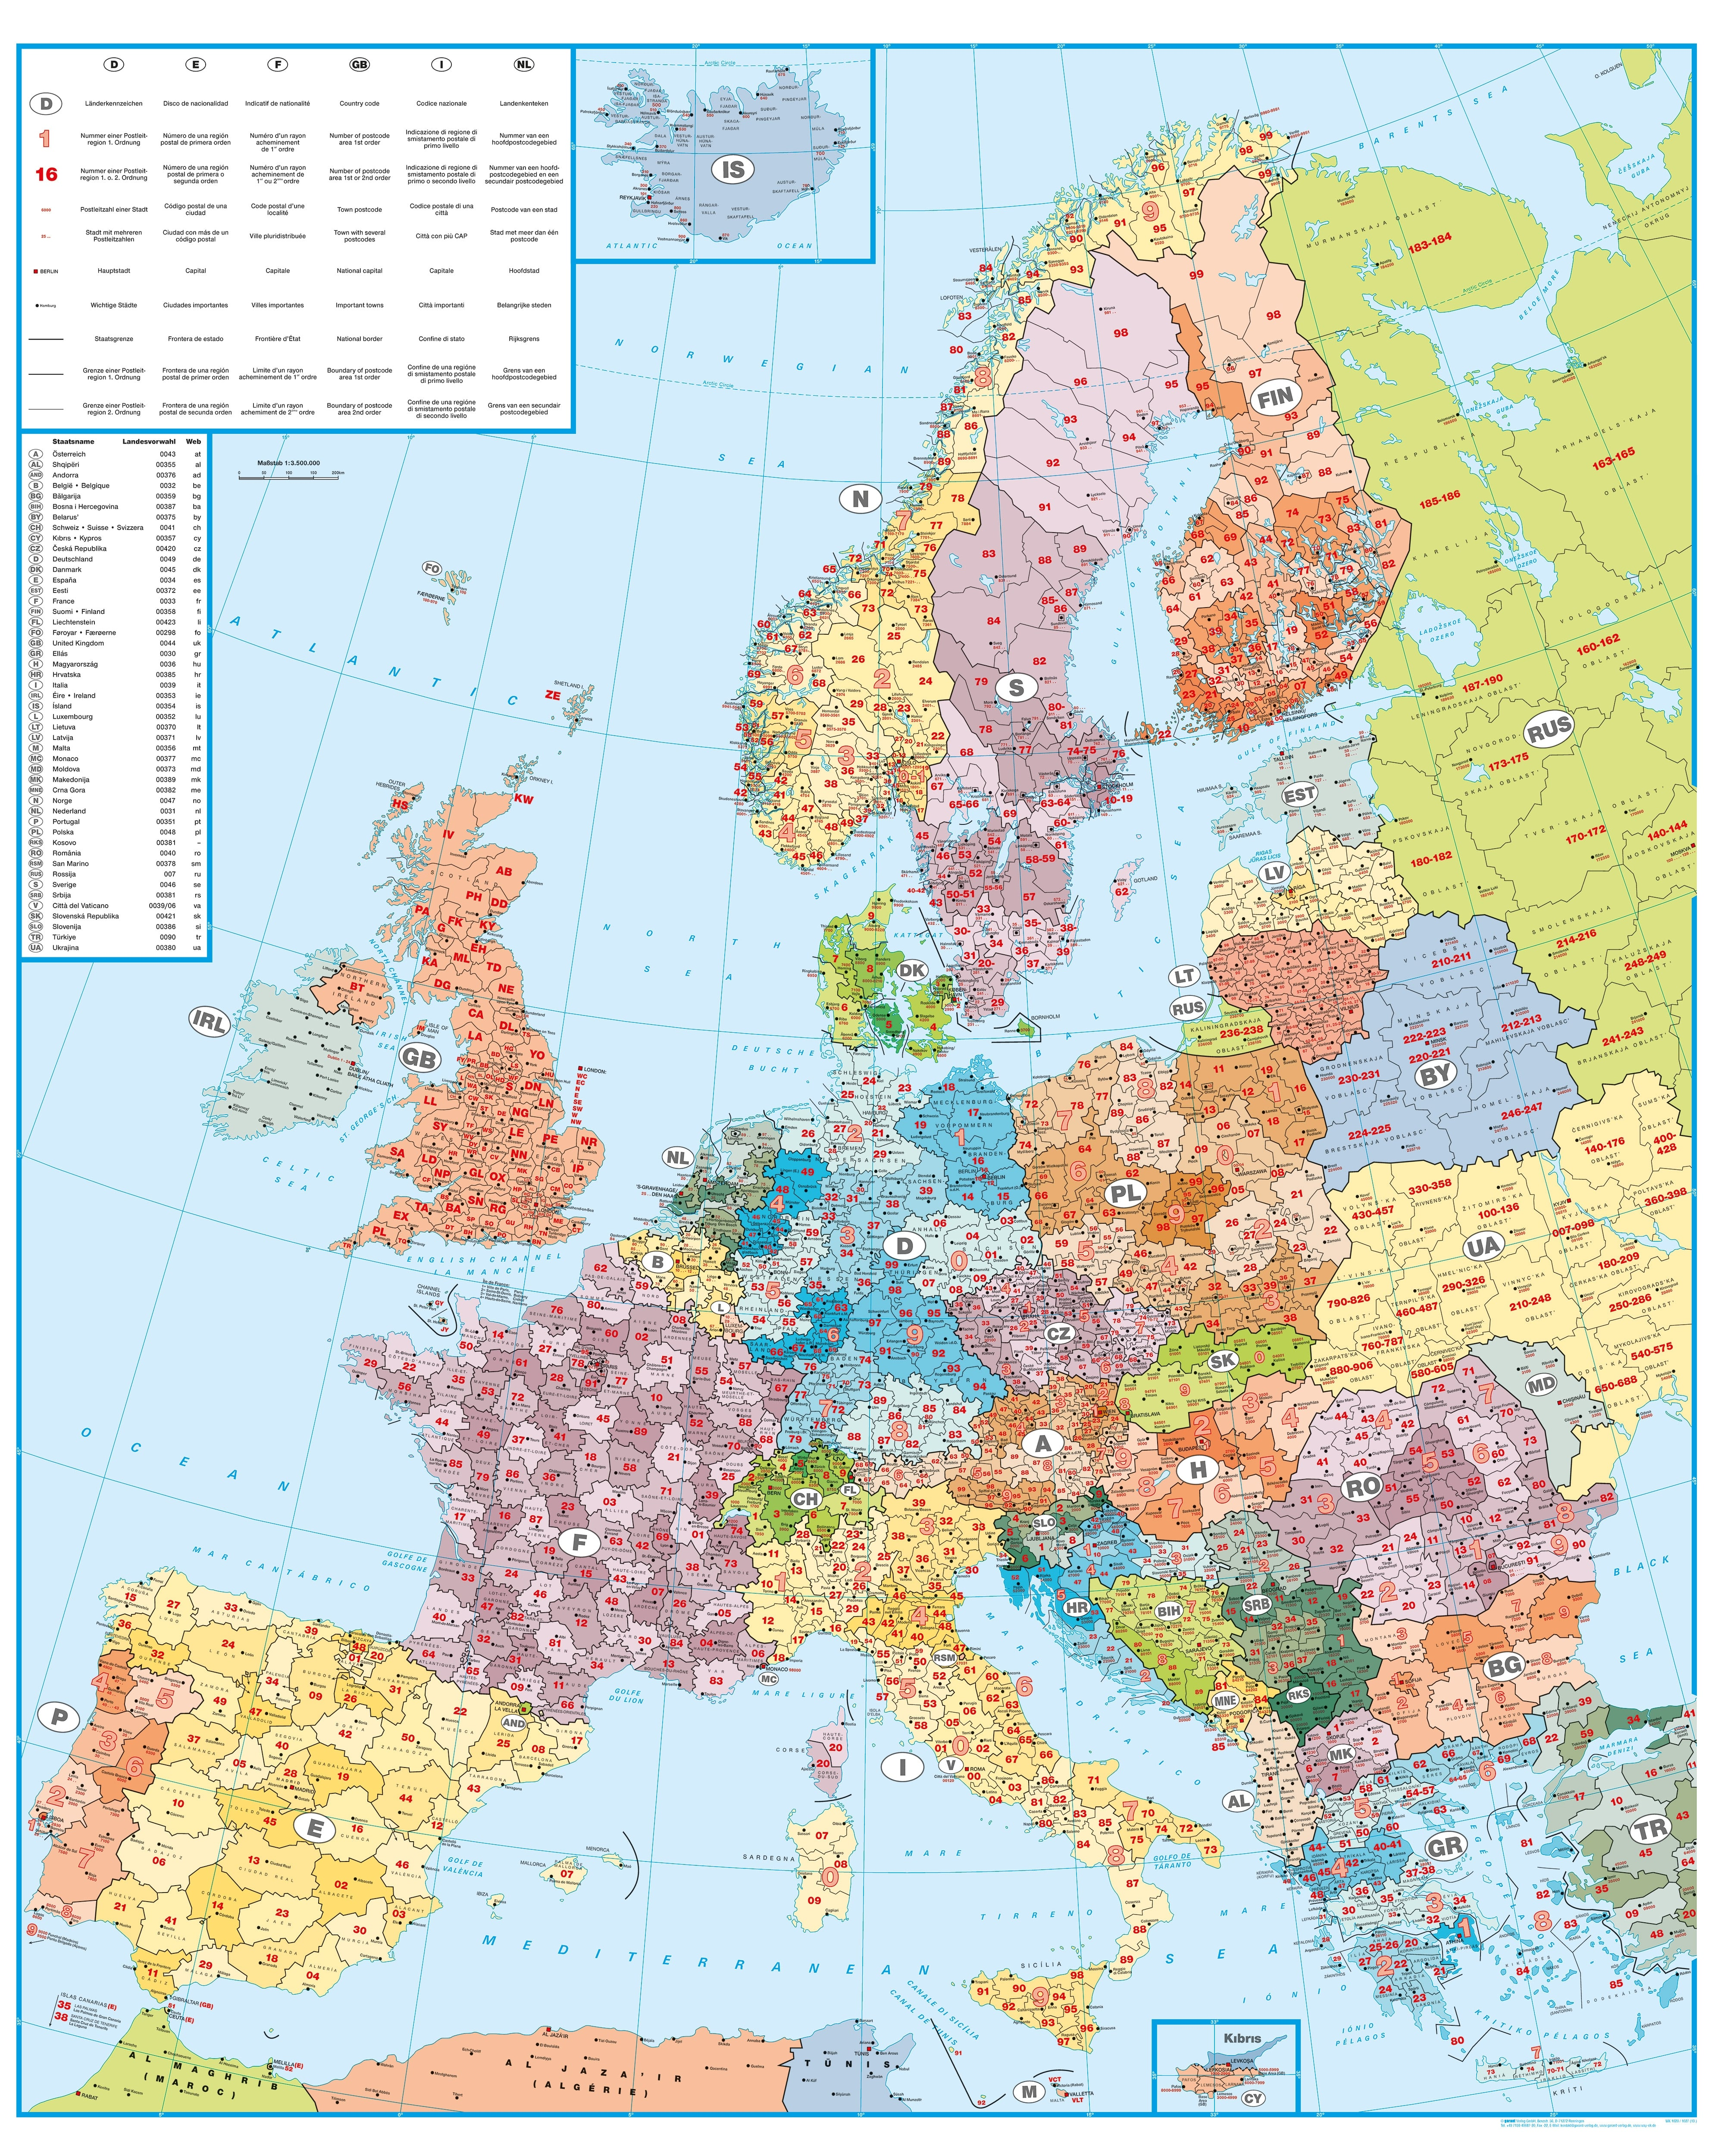 Post Code Map of Europe 98 x 123cm